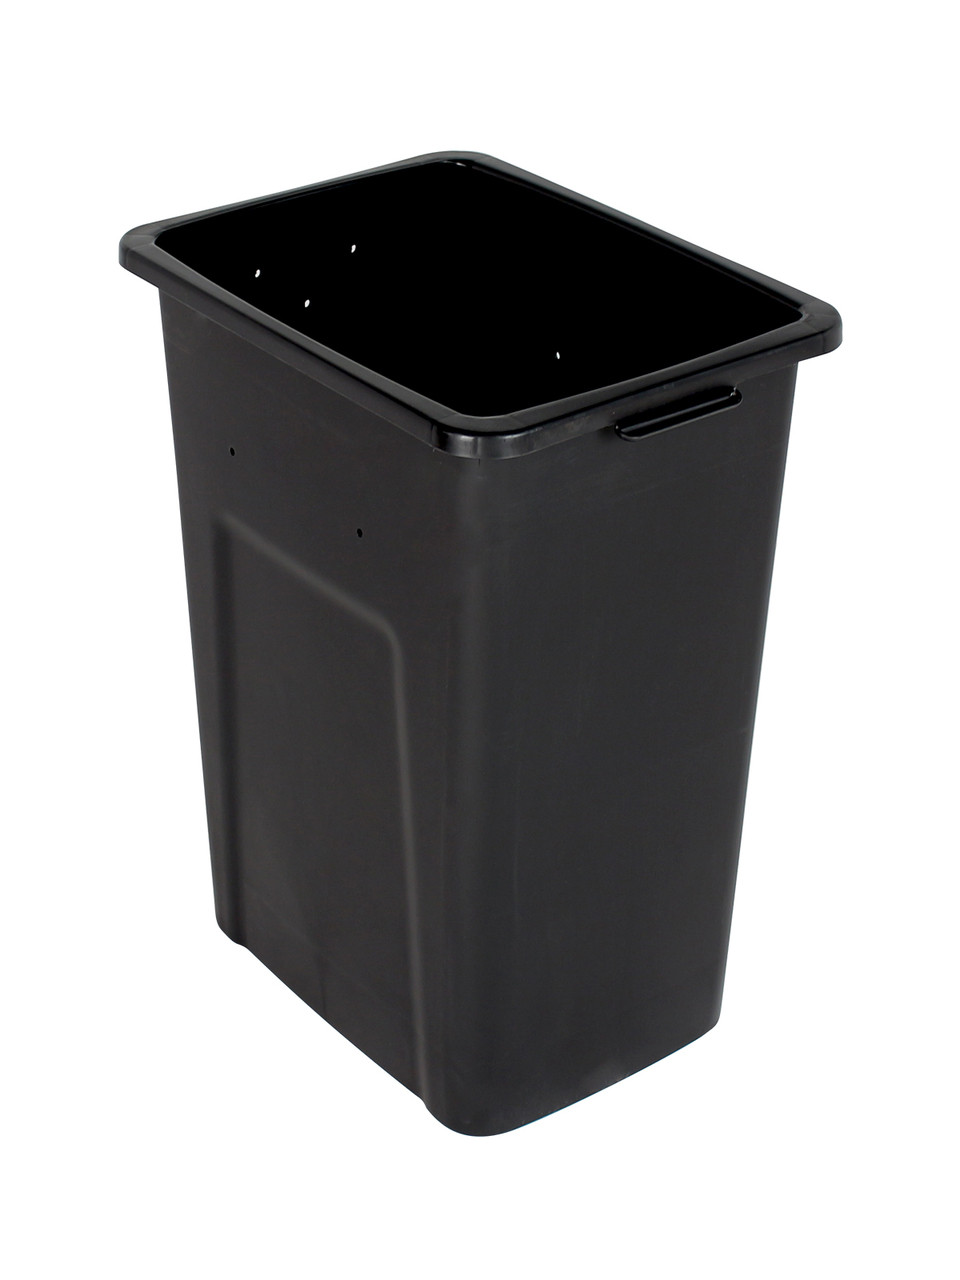 28 Gallon Extra Large Home & Office Trash Can Black